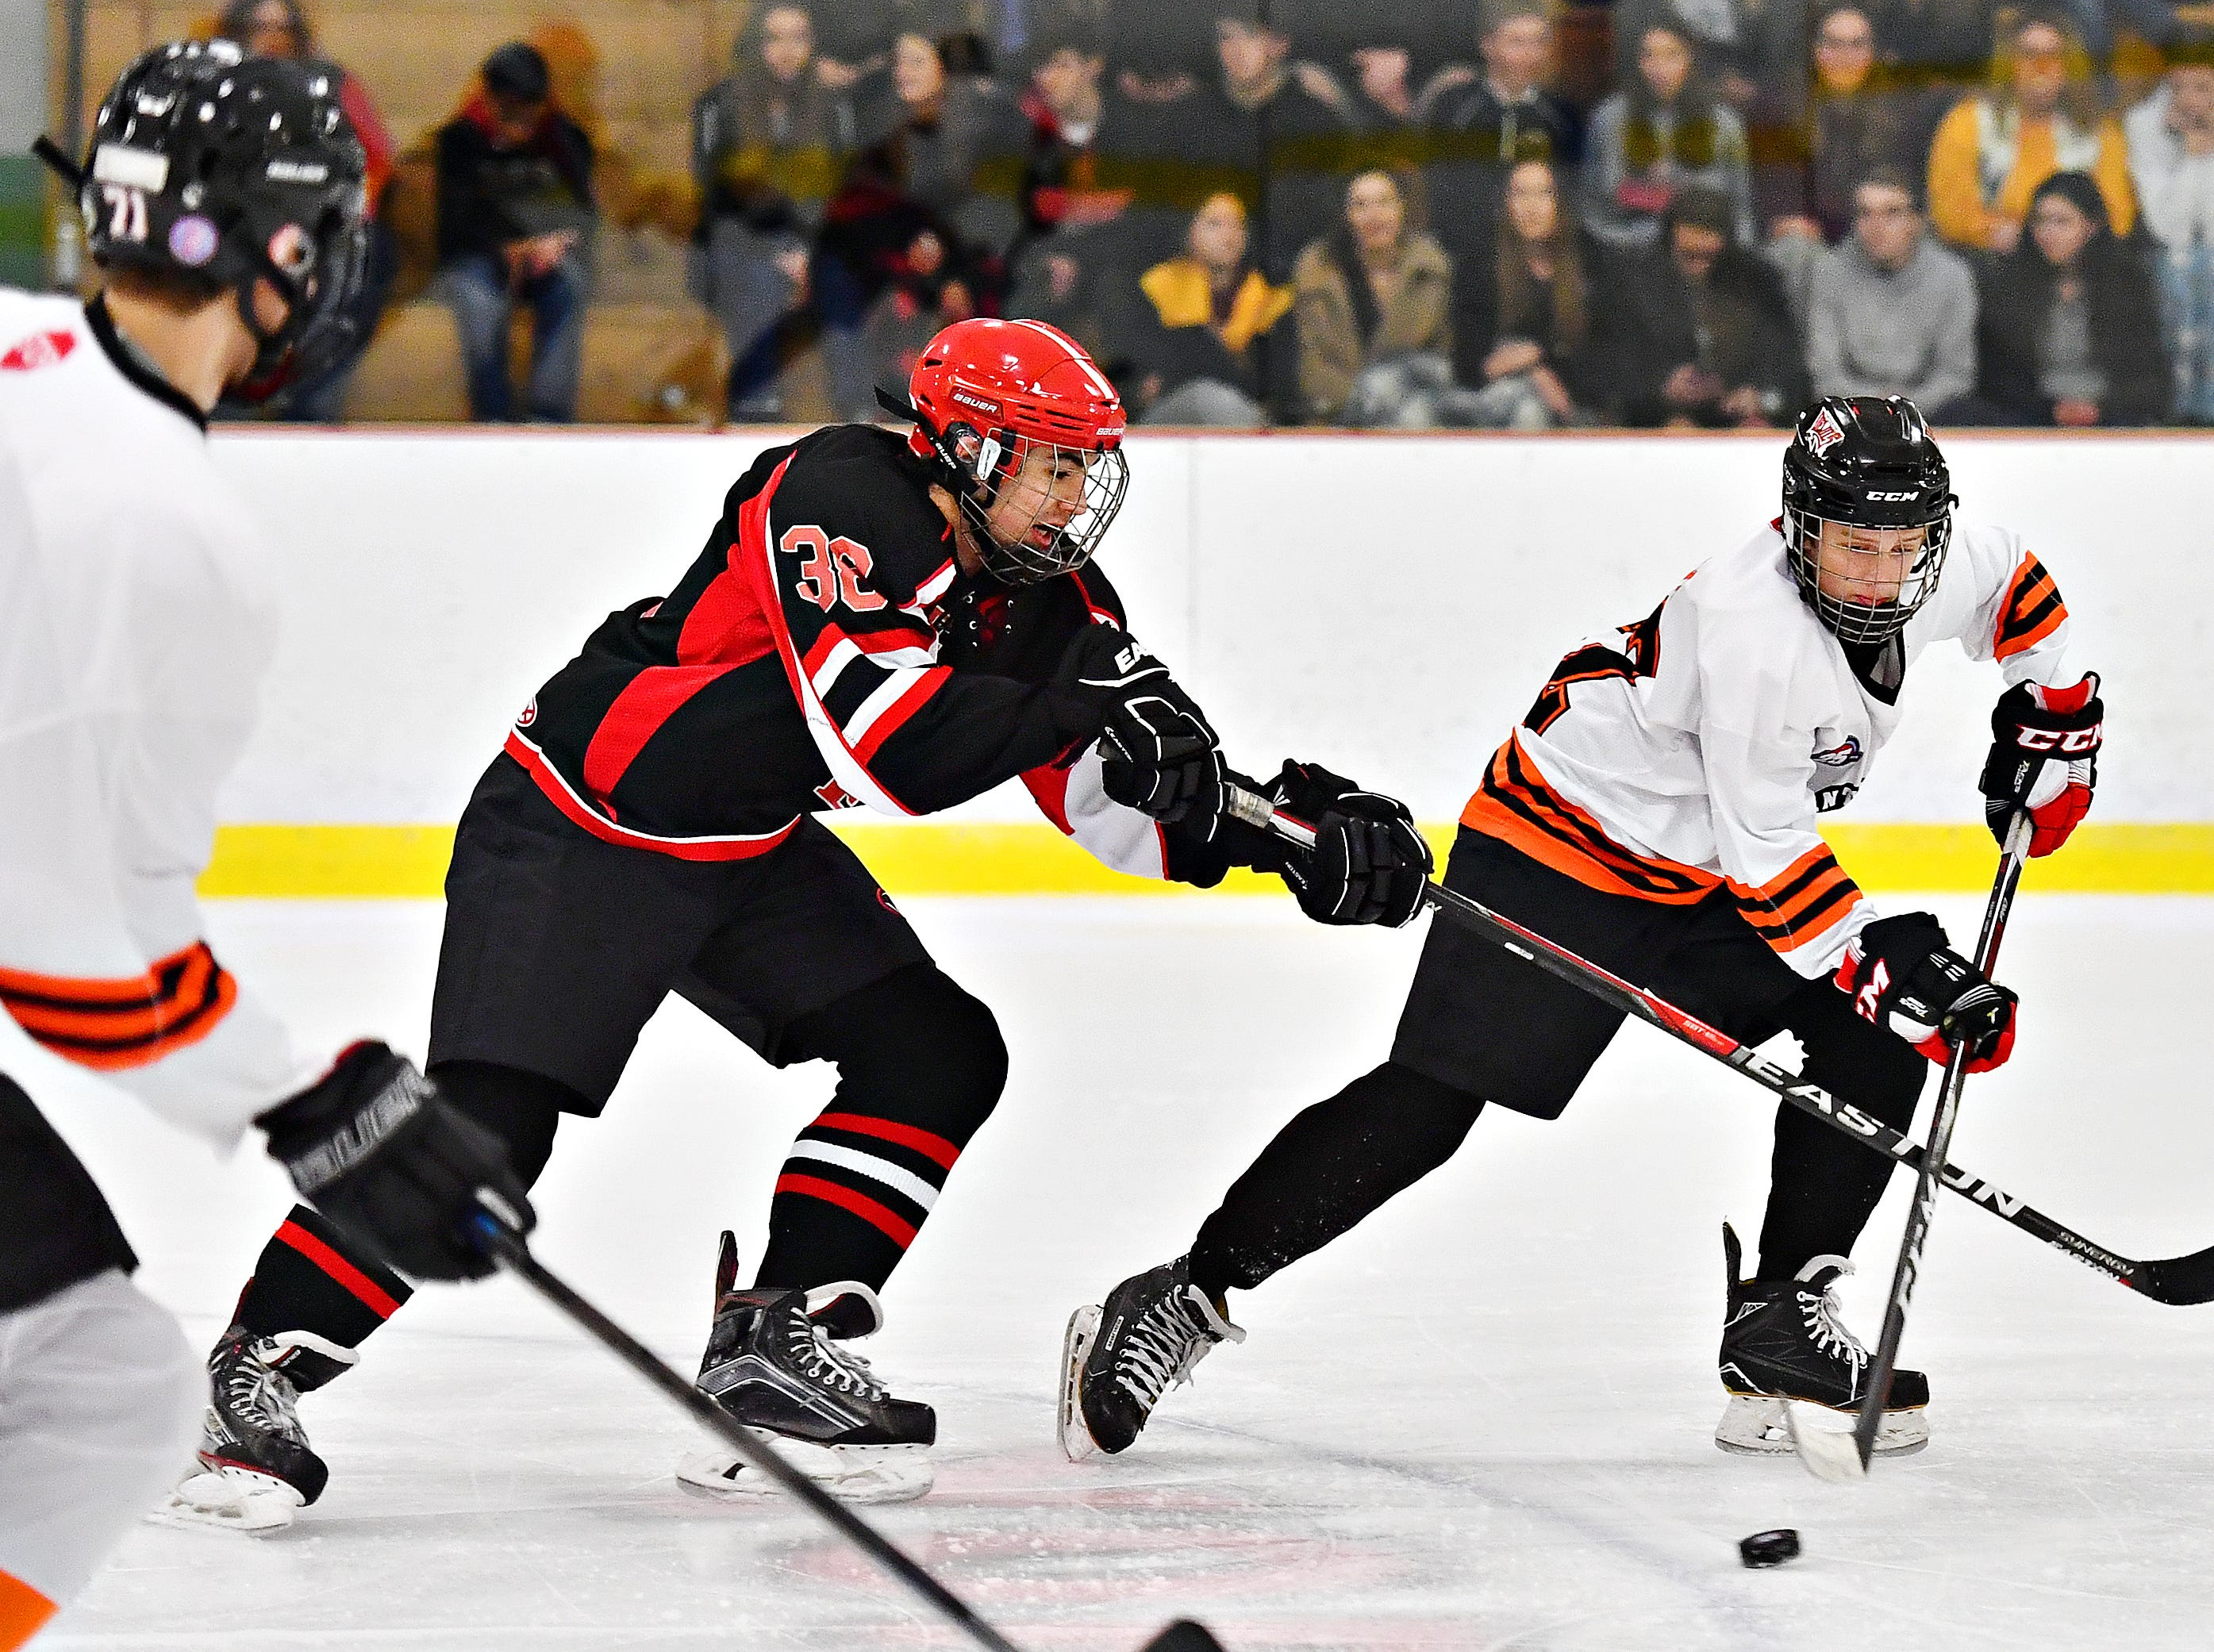 Central York's Mason Steward, right, works to control the puck while Cumberland Valley's Cole Thayer defends during ice hockey action at York Ice Arena in York City, Wednesday, Dec. 5, 2018. Dawn J. Sagert photo